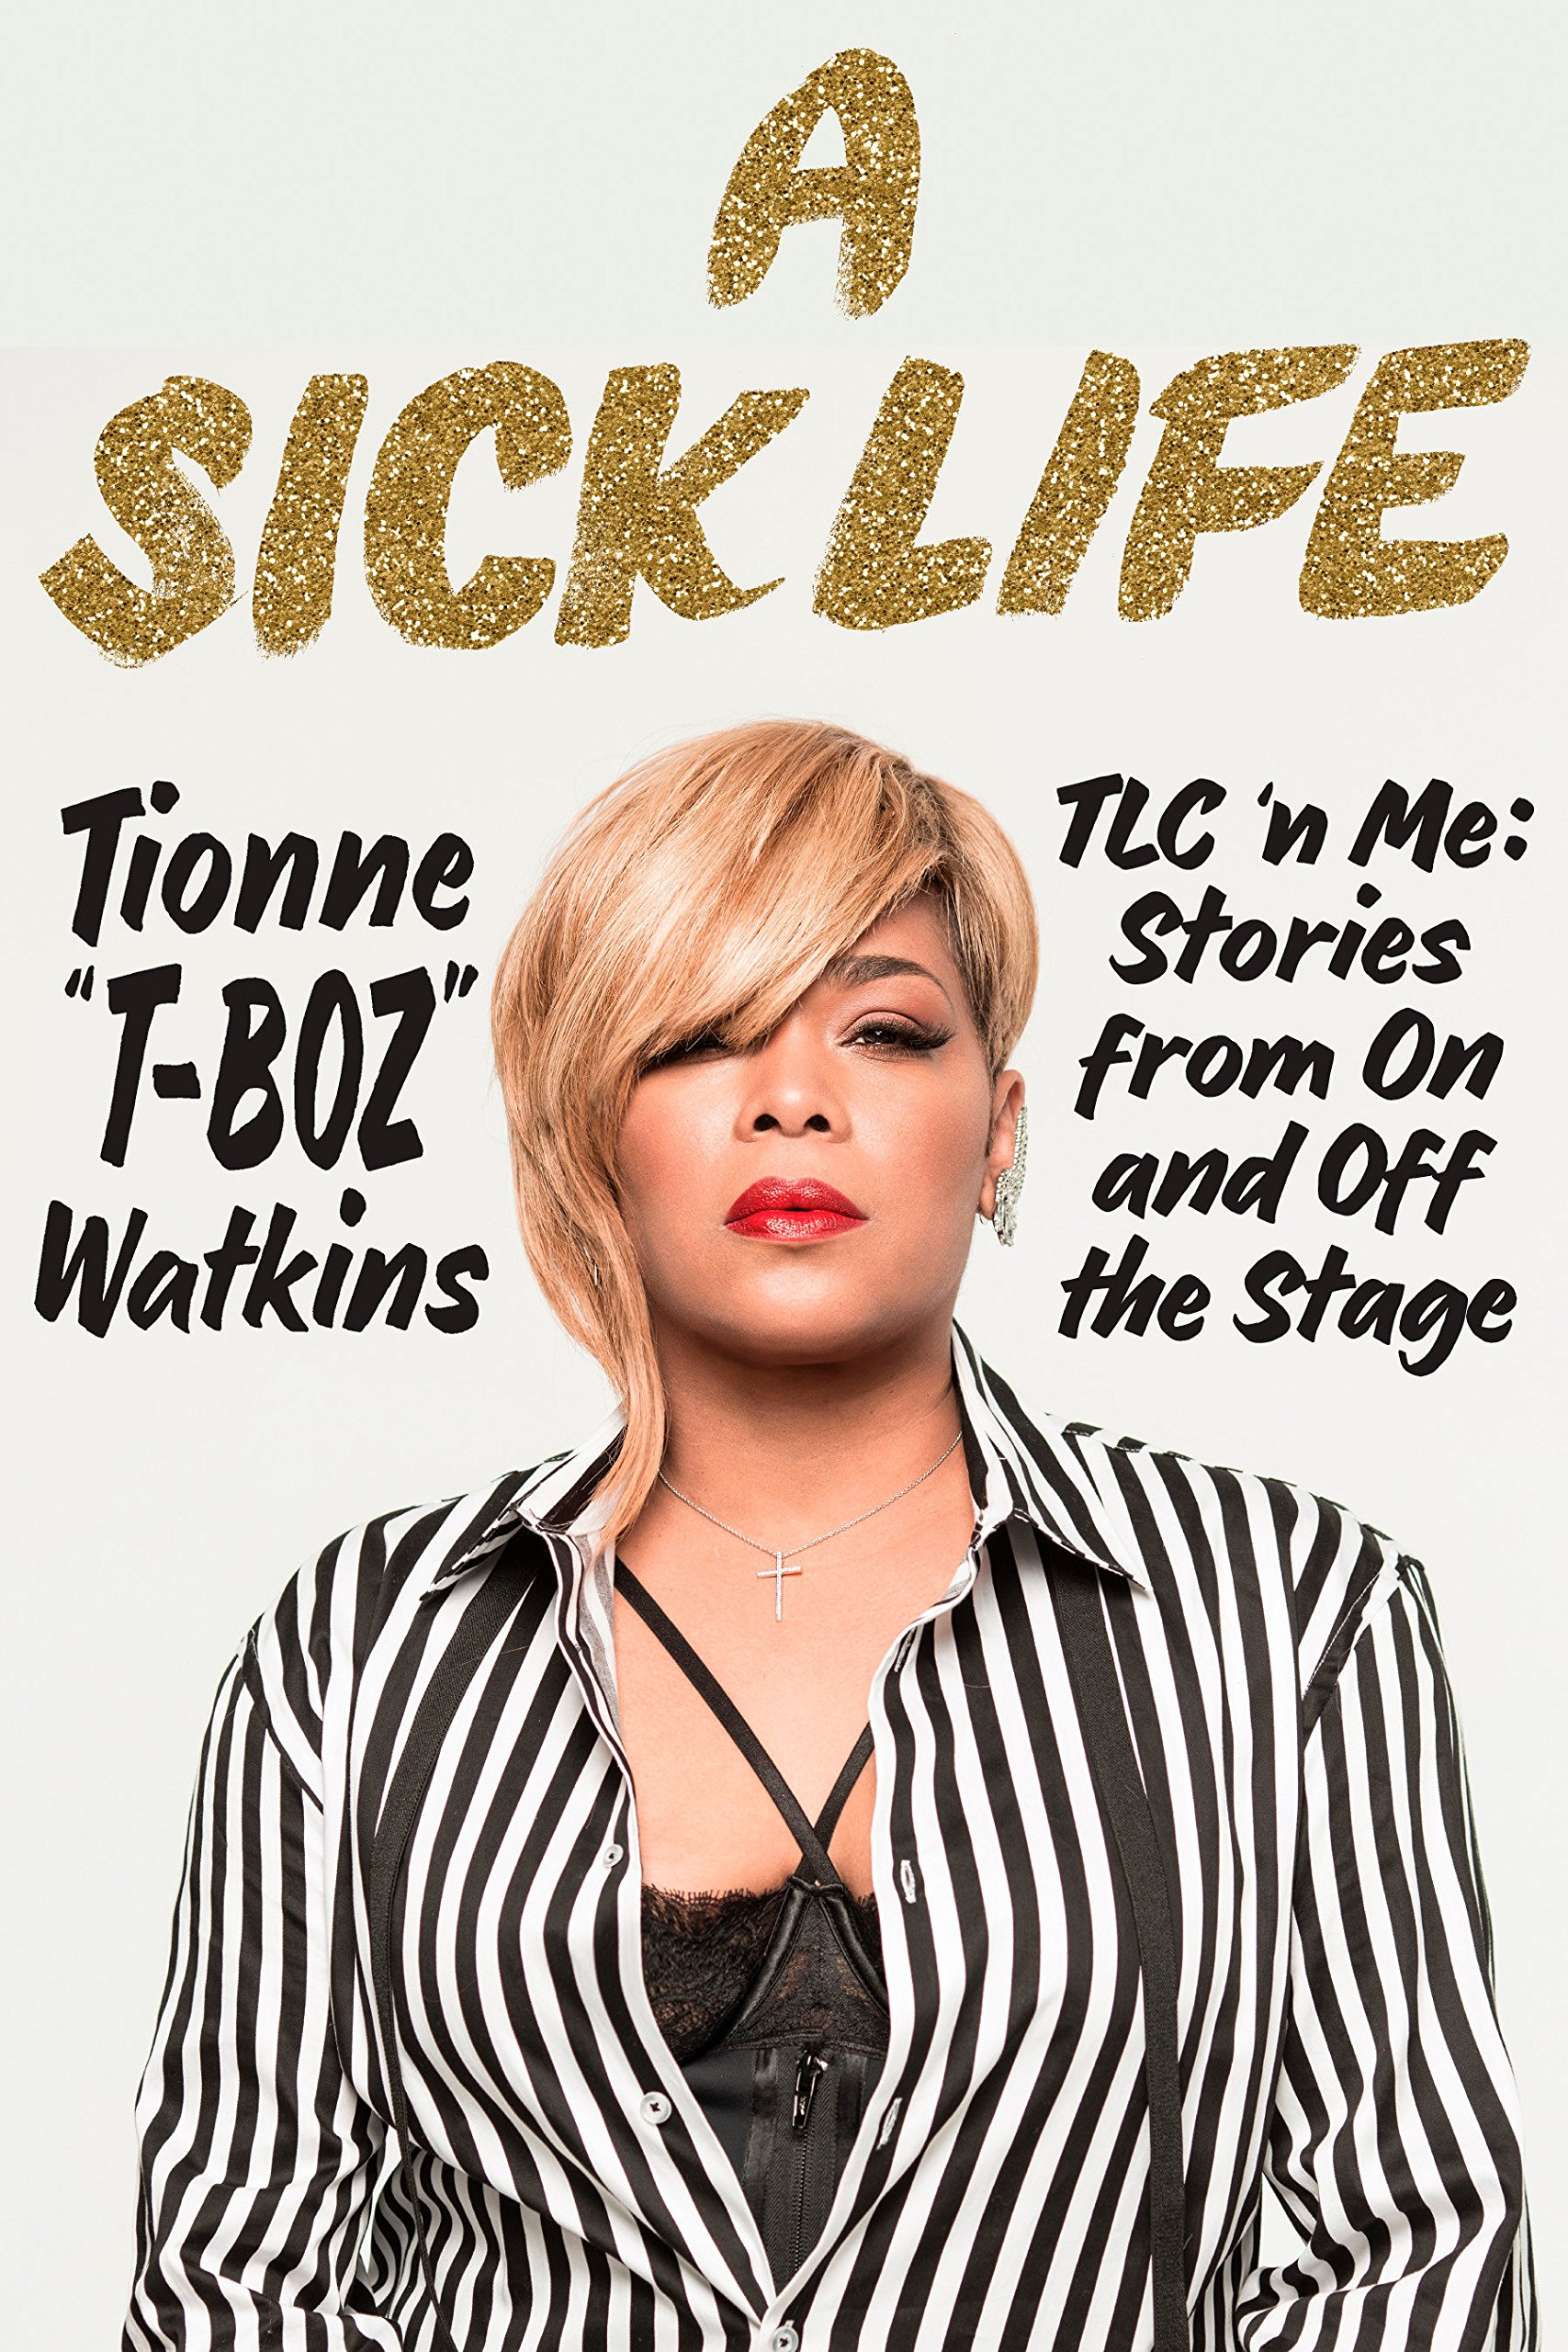 A picture of Tionne Watkins book cover.